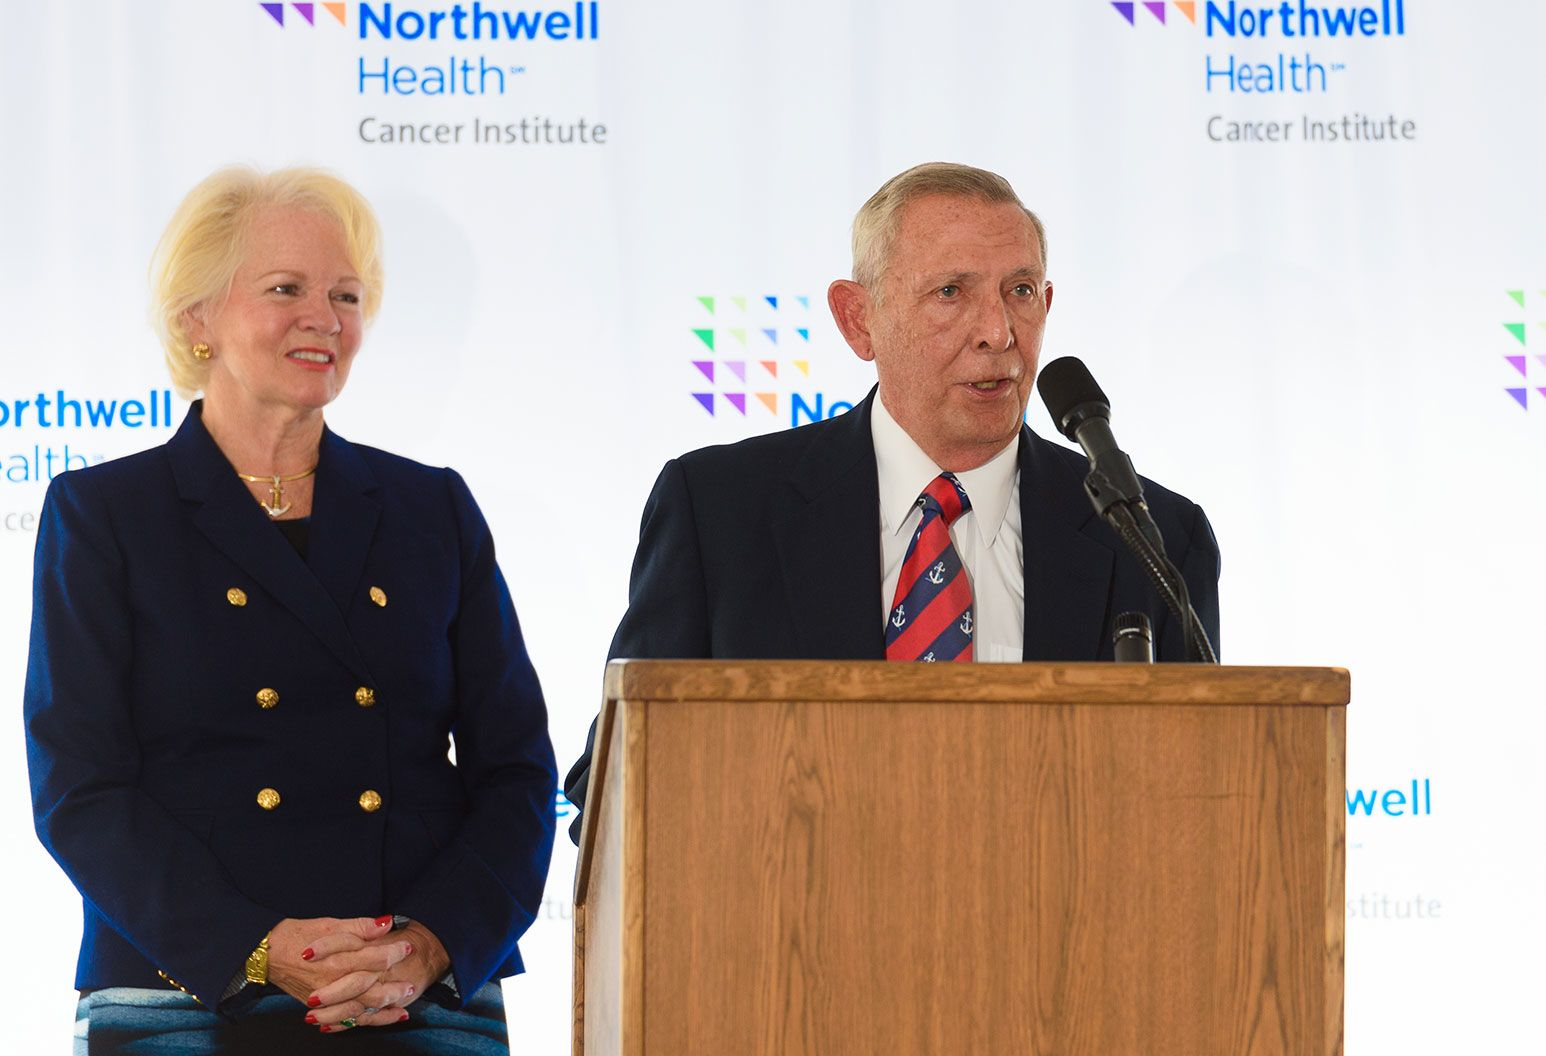 An older man in a suit stands in front of a podium and is speaking into a microphone as an elderly woman dressed in a blue blazer stands beside him smiling. She has blonde hair and is wearing gold earrings, a gold anchor necklace, and a gold bracelet.